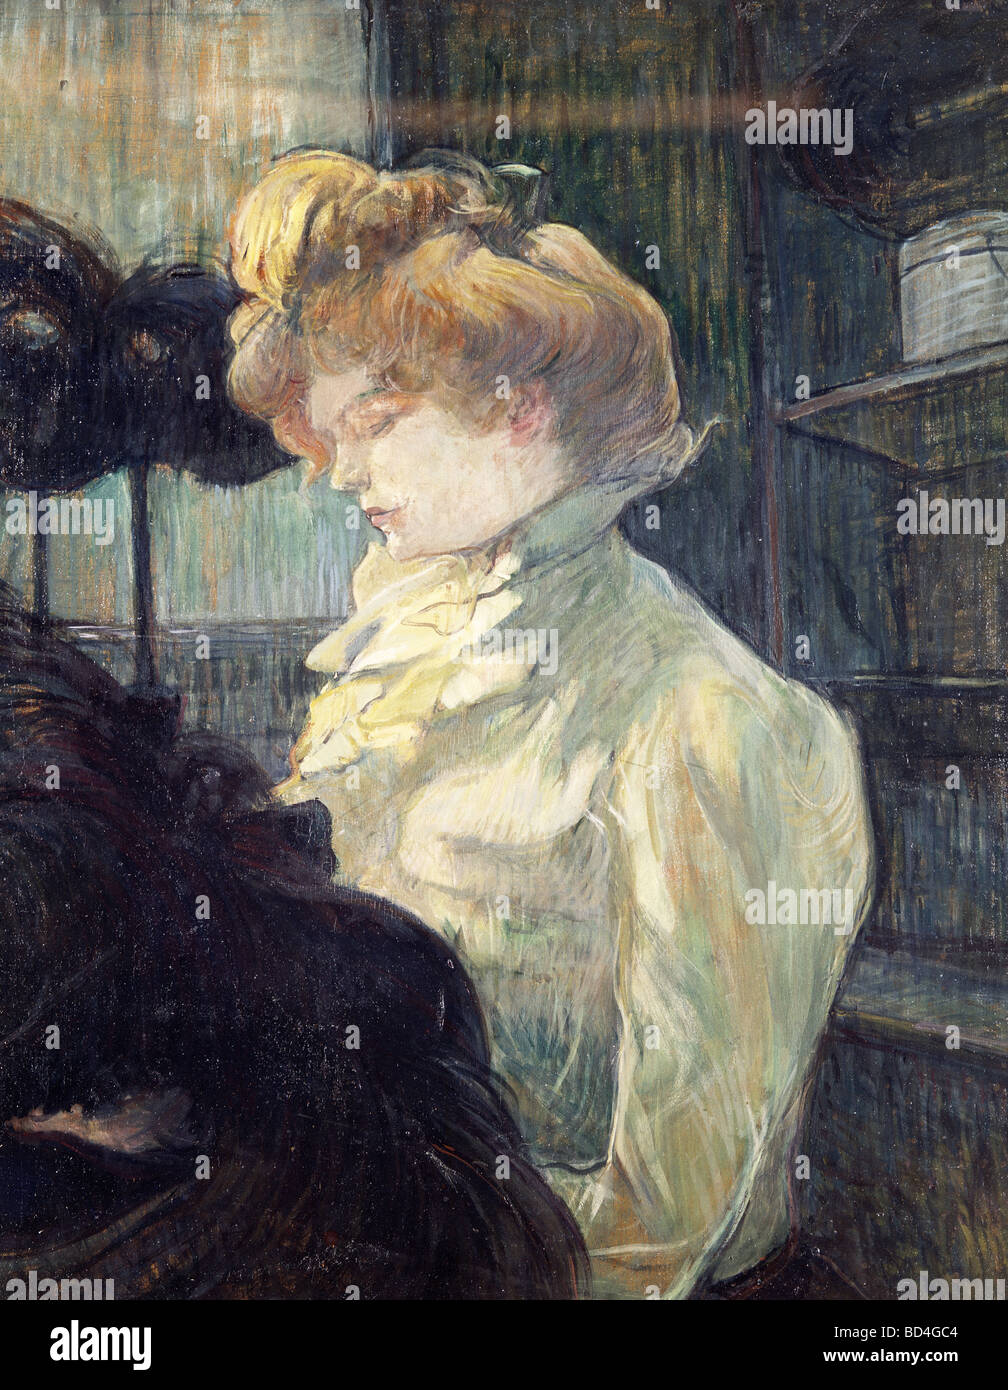 "fine arts, Toulouse-Lautrec, Henri de (1864 - 1901), painting, ""La Modiste"", 1900, Museum Albi, Europe, France, Stock Photo"